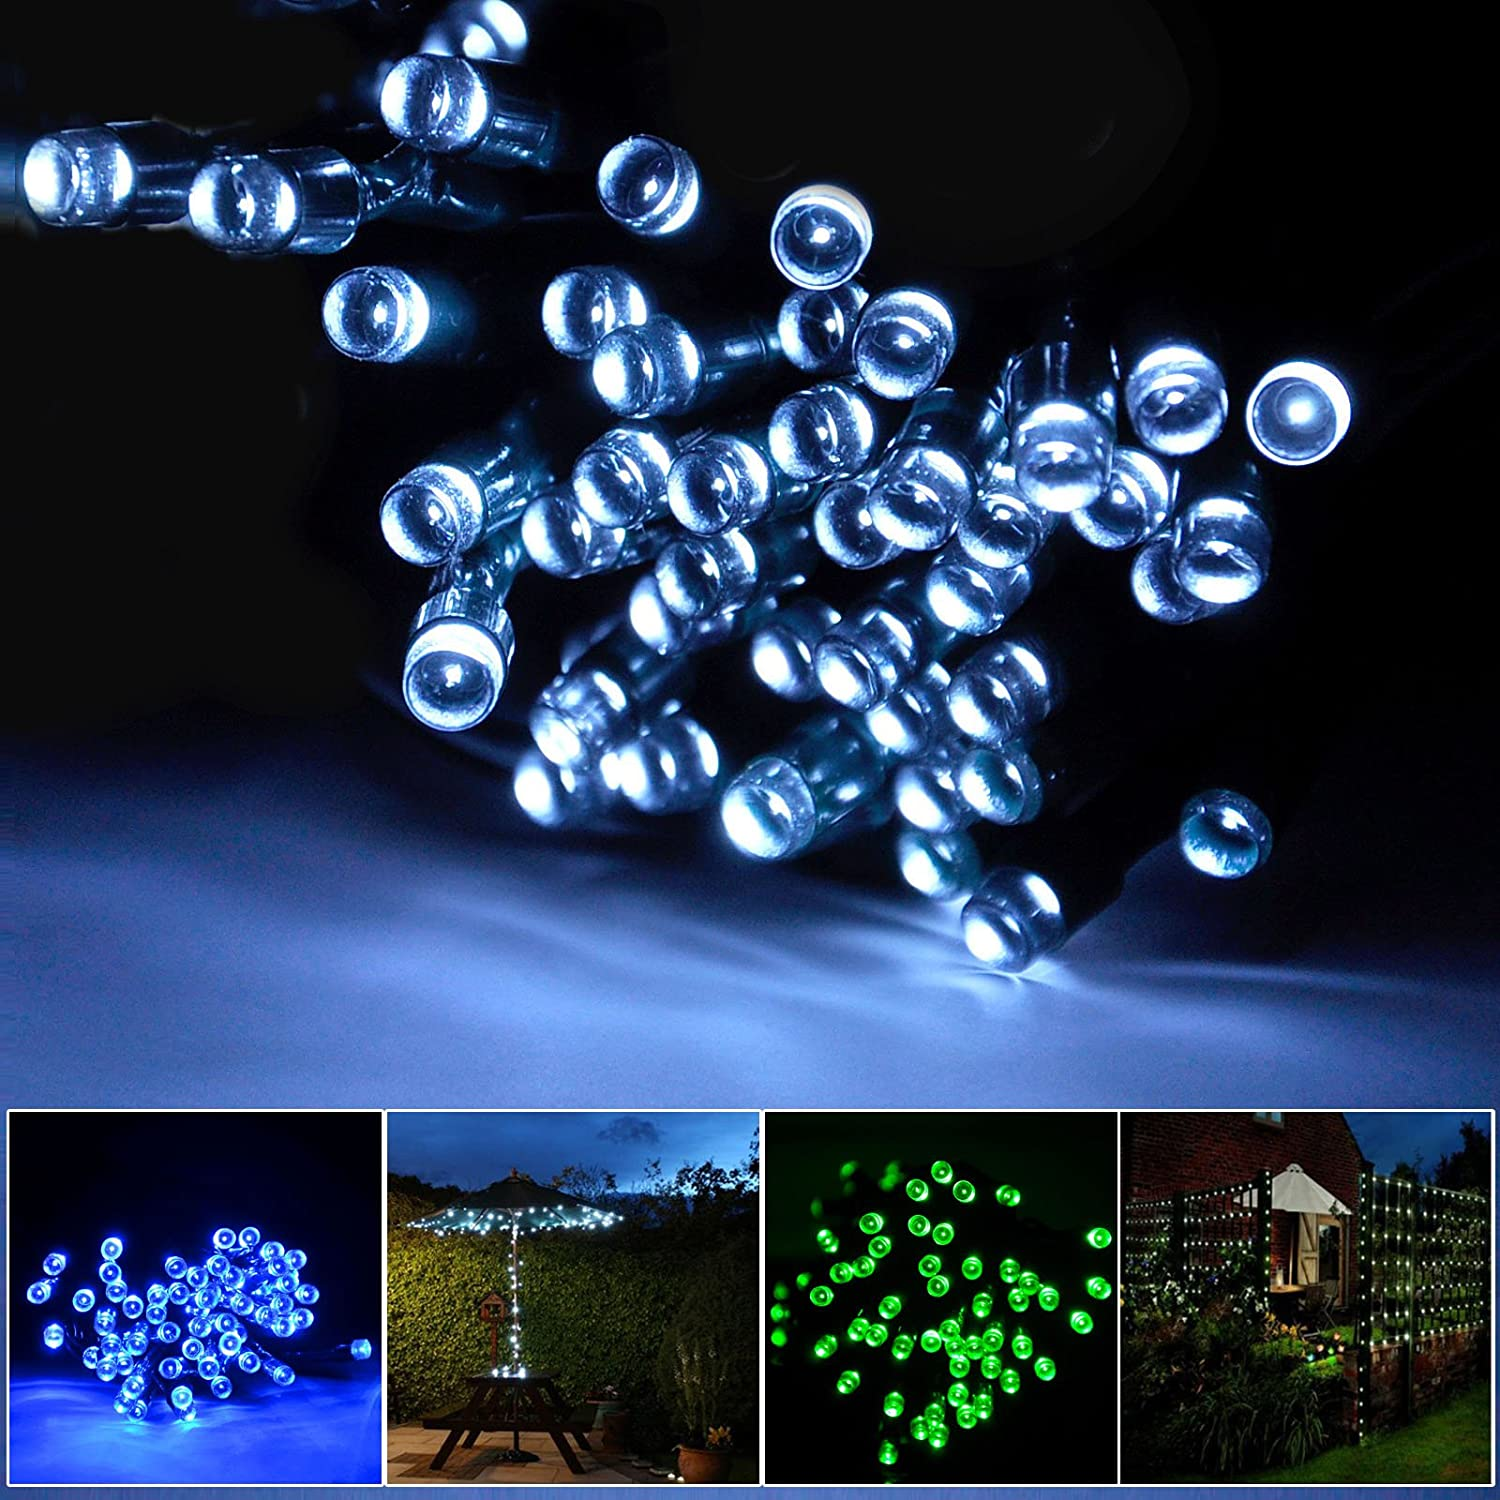 Lychee 17m 55ft 100LED Solar Waterproof Fairy String Light With 2 Modes for Outdoor Indoor Wedding Garden Home Party Christmas Decoration (White)